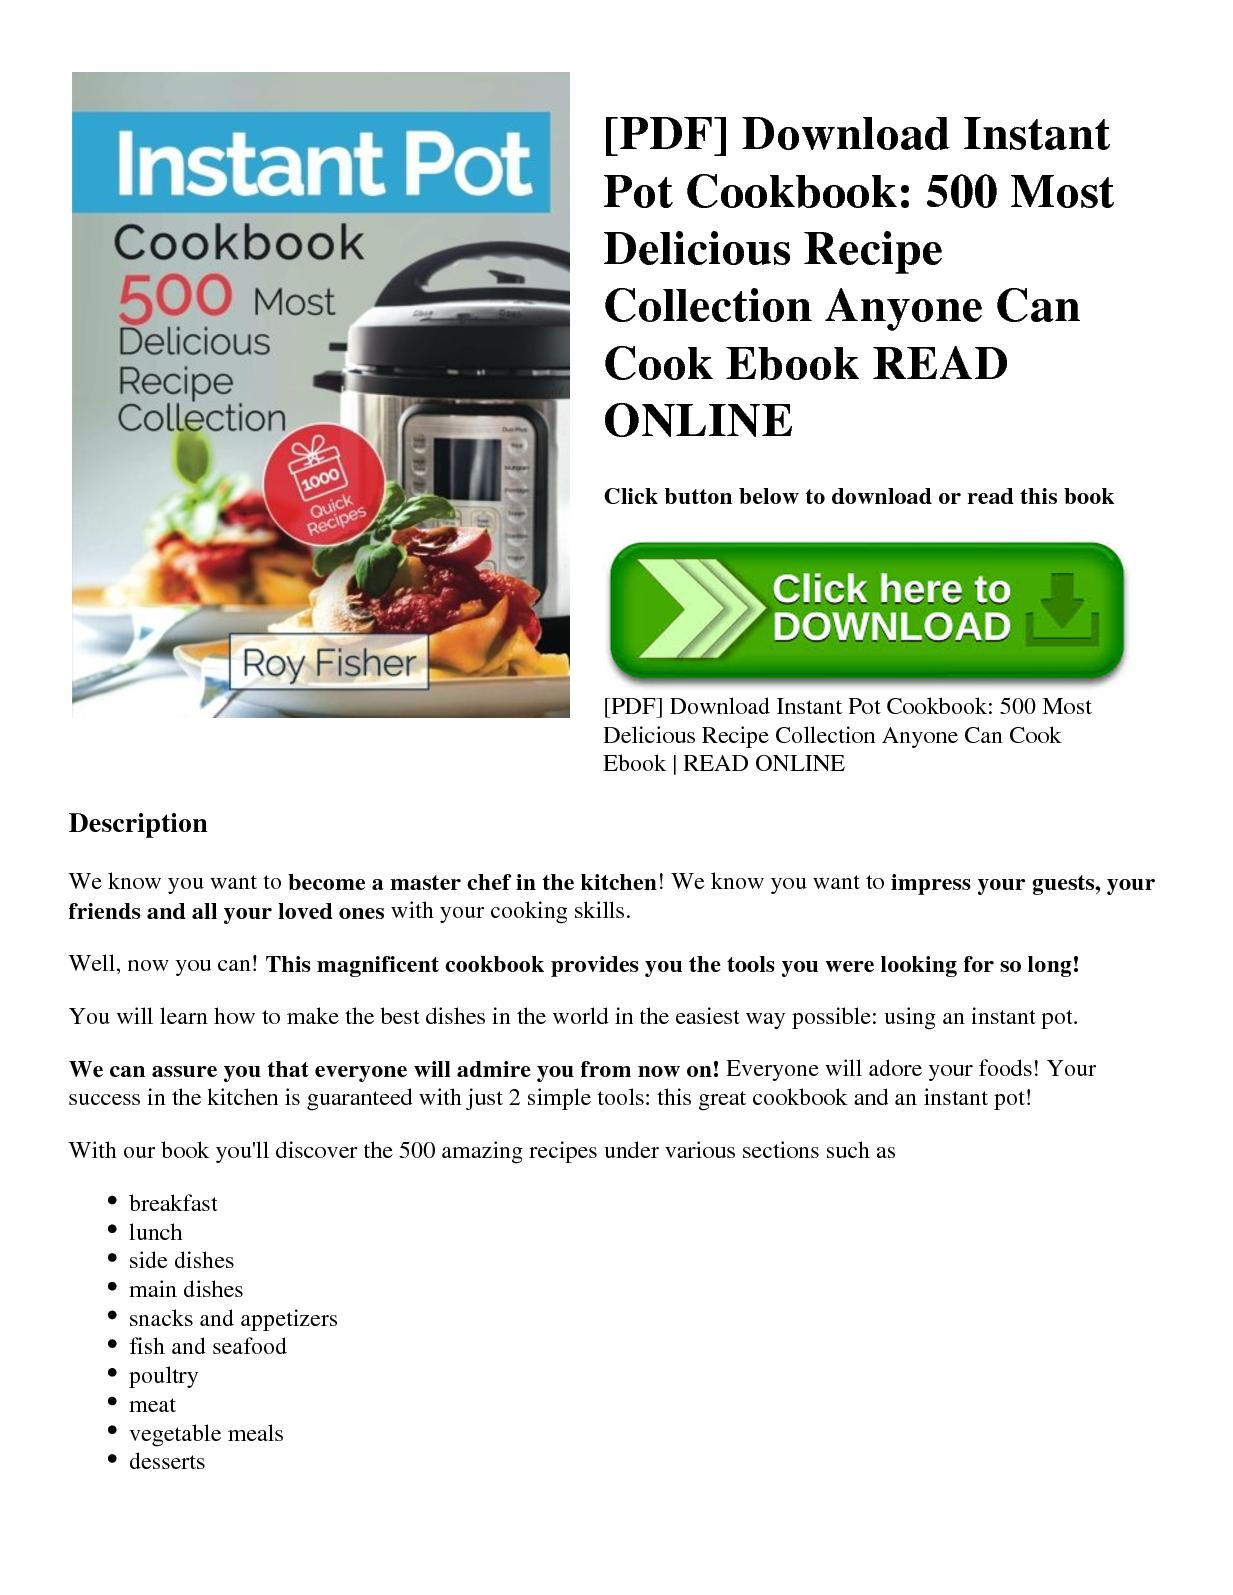 Instant Pot Cookbook Pdf